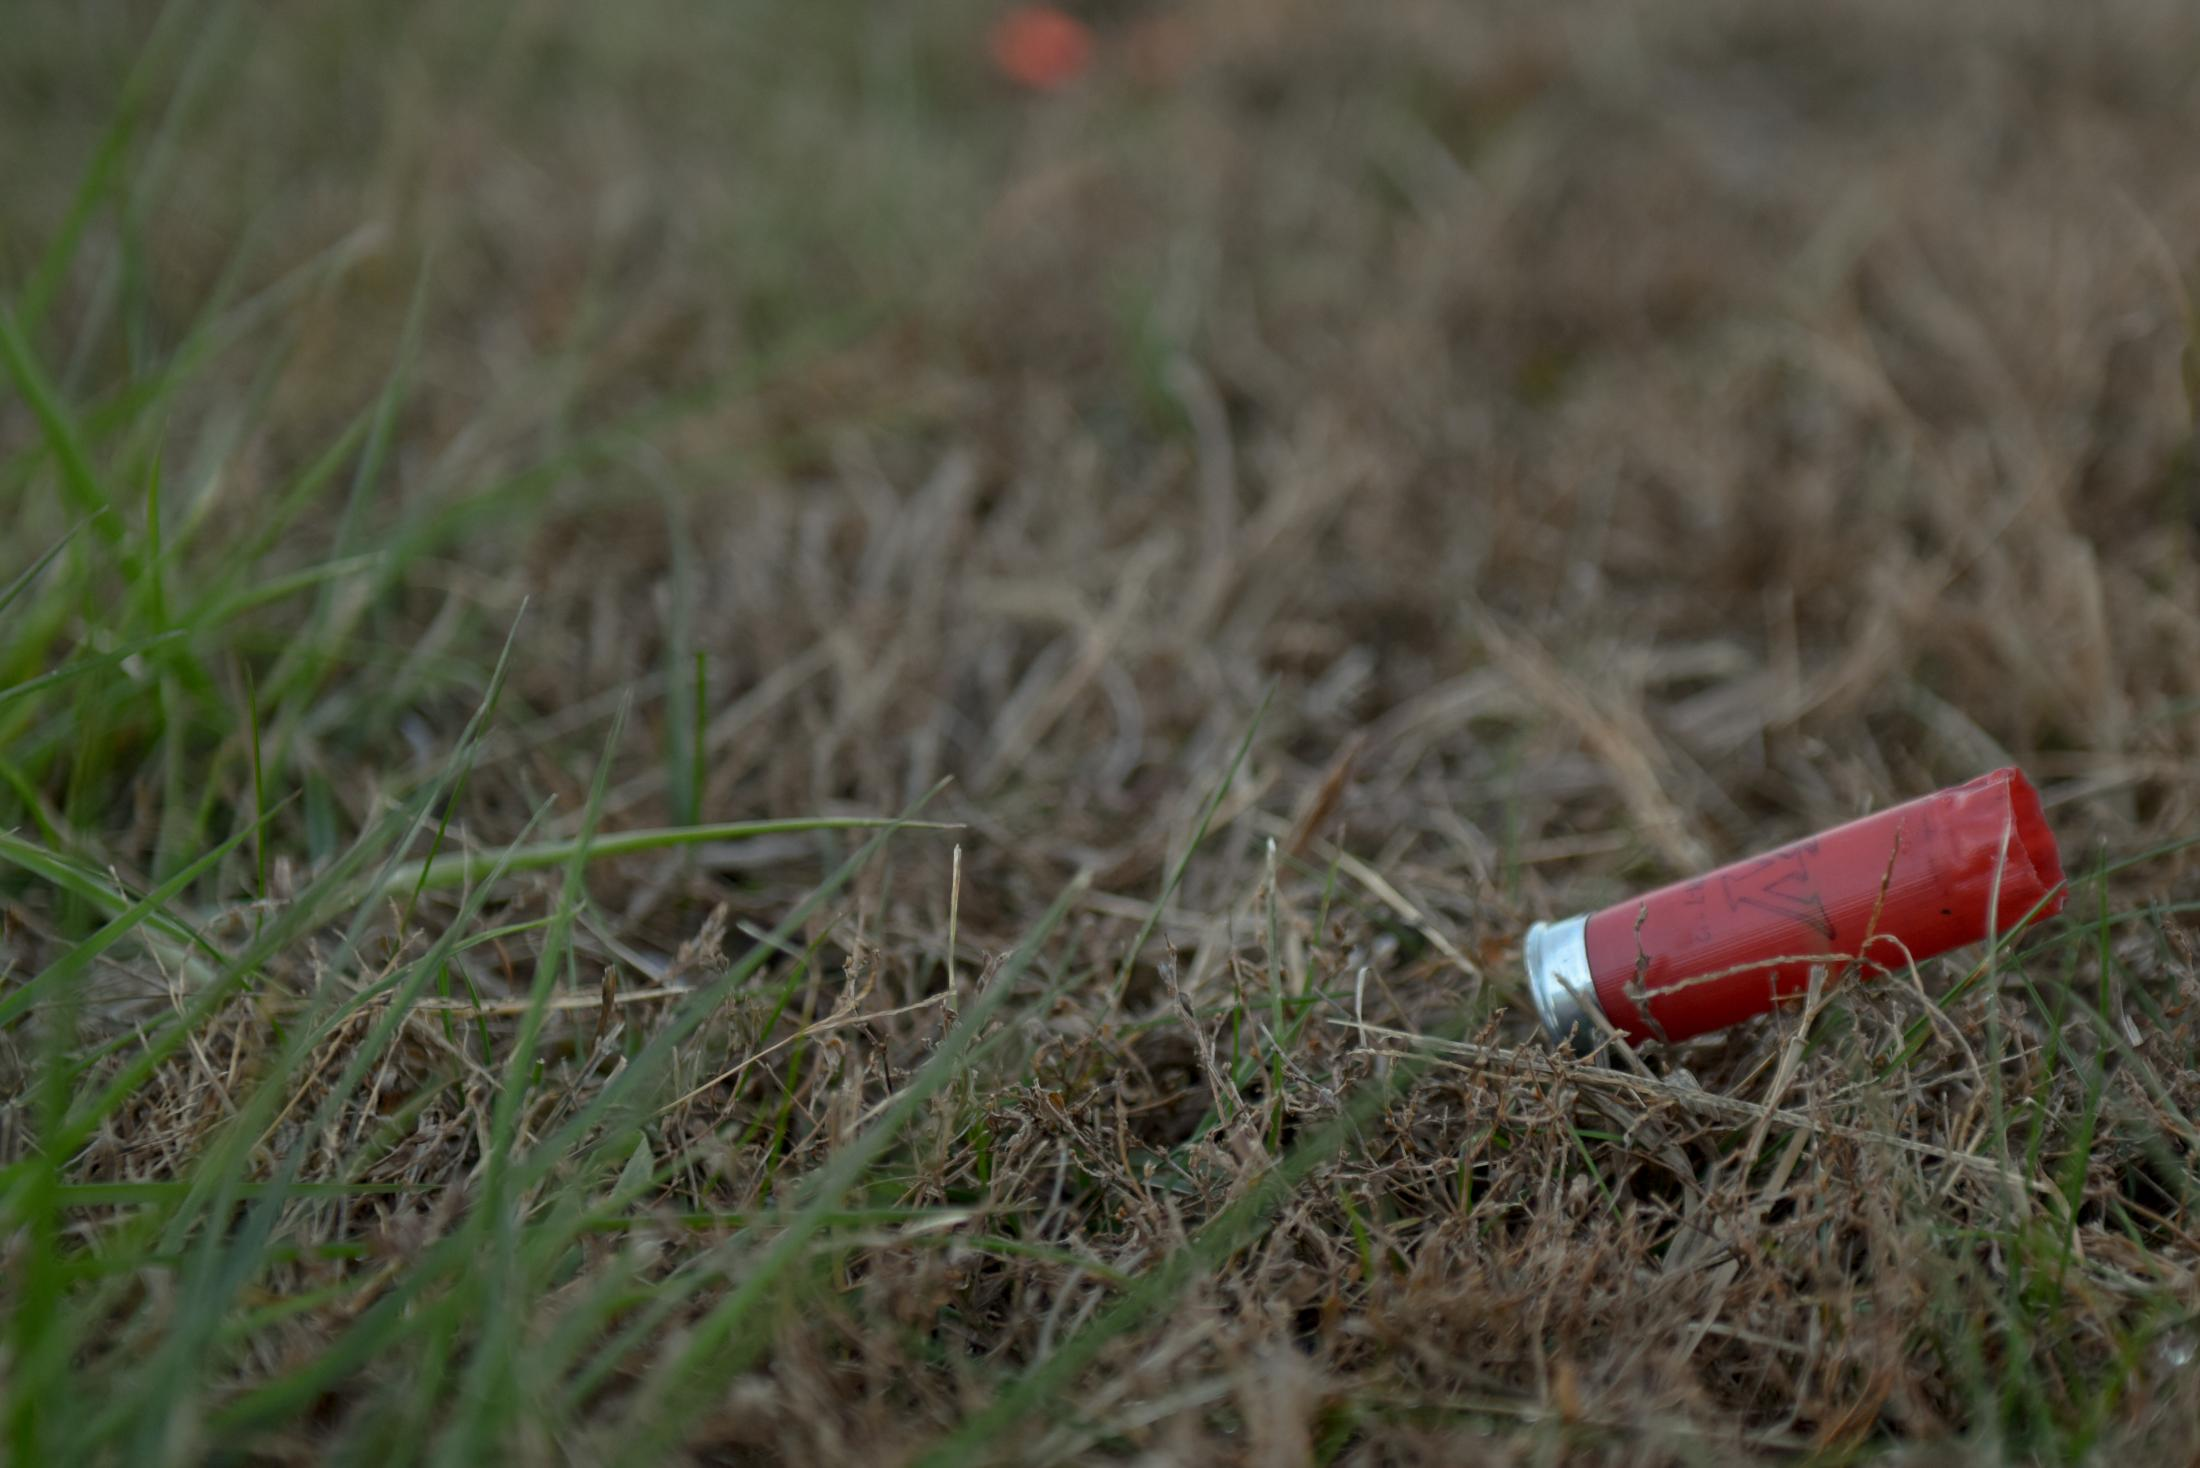 An empty shotgun shell sits on the ground at the Poplar Bluff Gun Club in Poplar Bluff, Missouri on November 9, 2019. Poplar Bluff High School received the most money from the NRA Foundation between 2010 to 2017 out of all K-12 schools, a total of $42,222 from three grants.